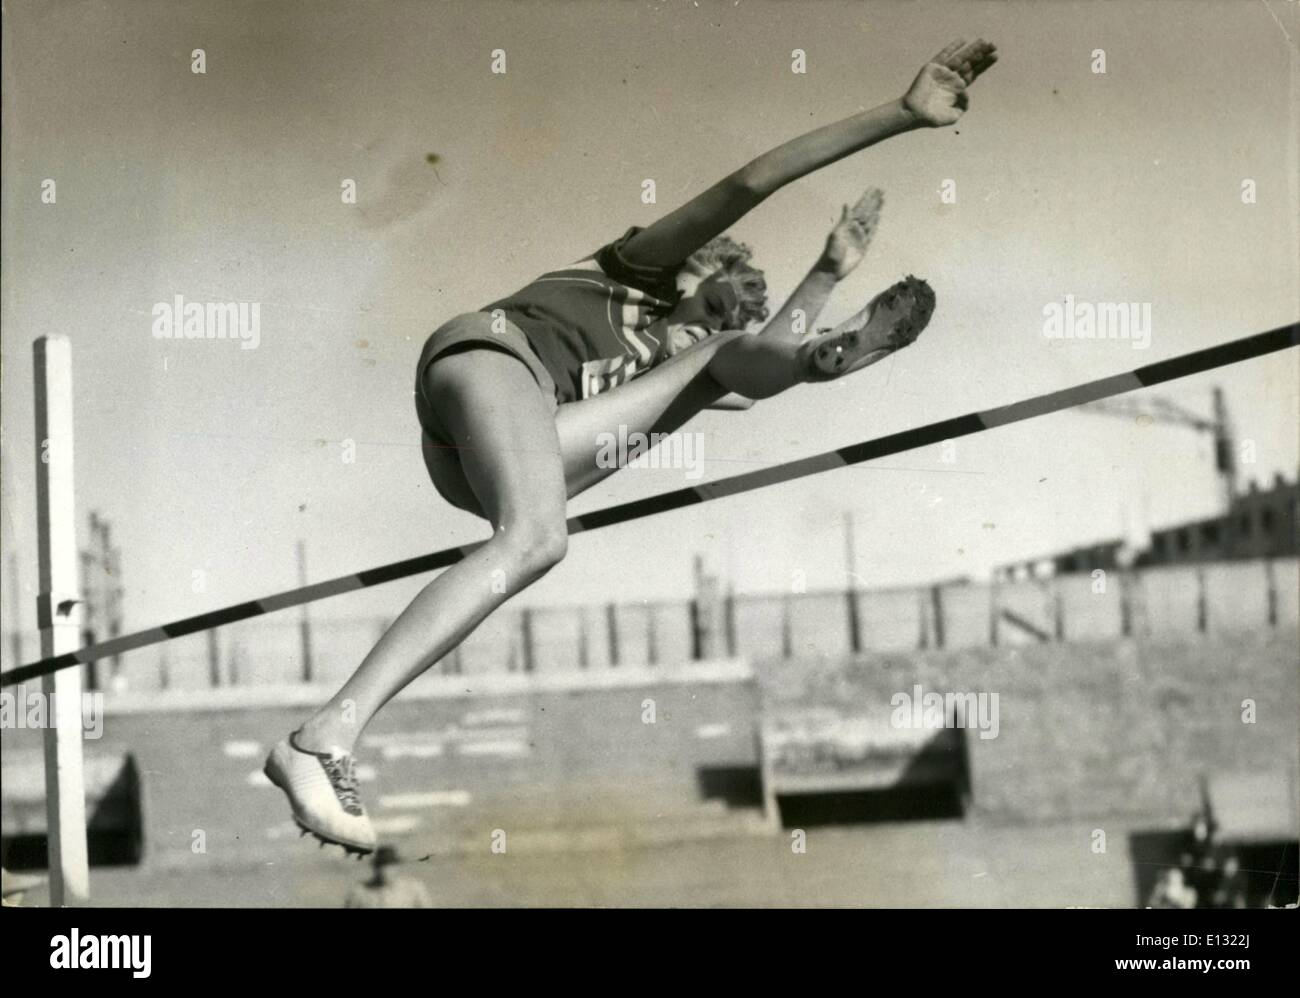 Feb. 26, 2012 - At the track meet between France, Germany, and Romania that was just held in Colombes, I. Balas (Romania), World Champion in the high jump, easily beat all of his opponents. Will the young Romanian win a gold medal at the Olympics in Melbourne? She is pi - Stock Image